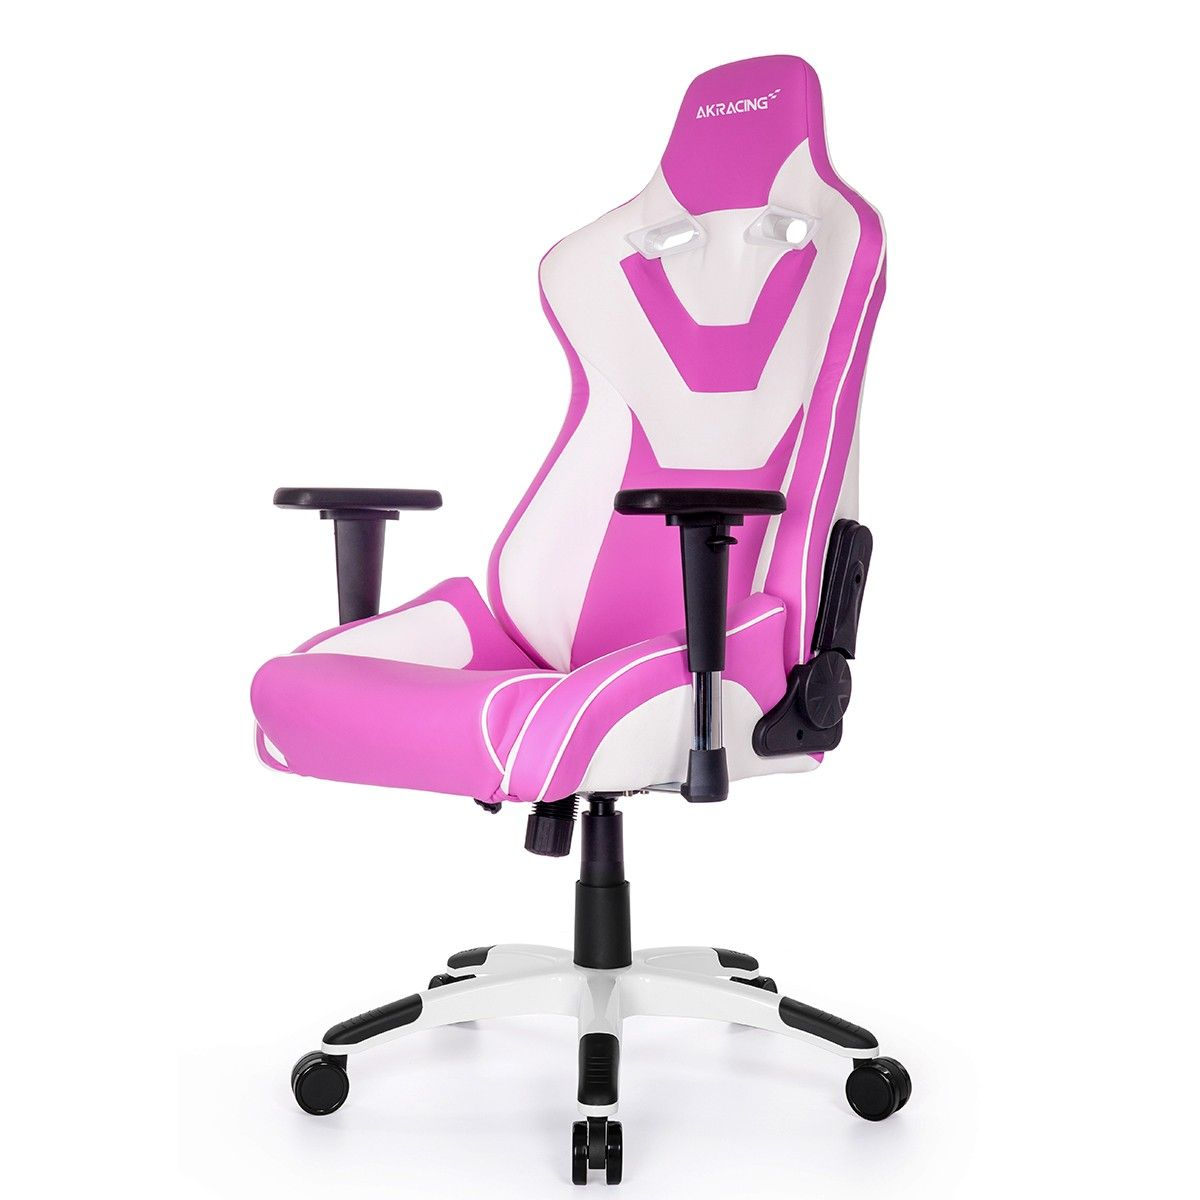 High Quality Gaming Chair AKRACING AK CP Pink And White   Versus Gamers Gallery